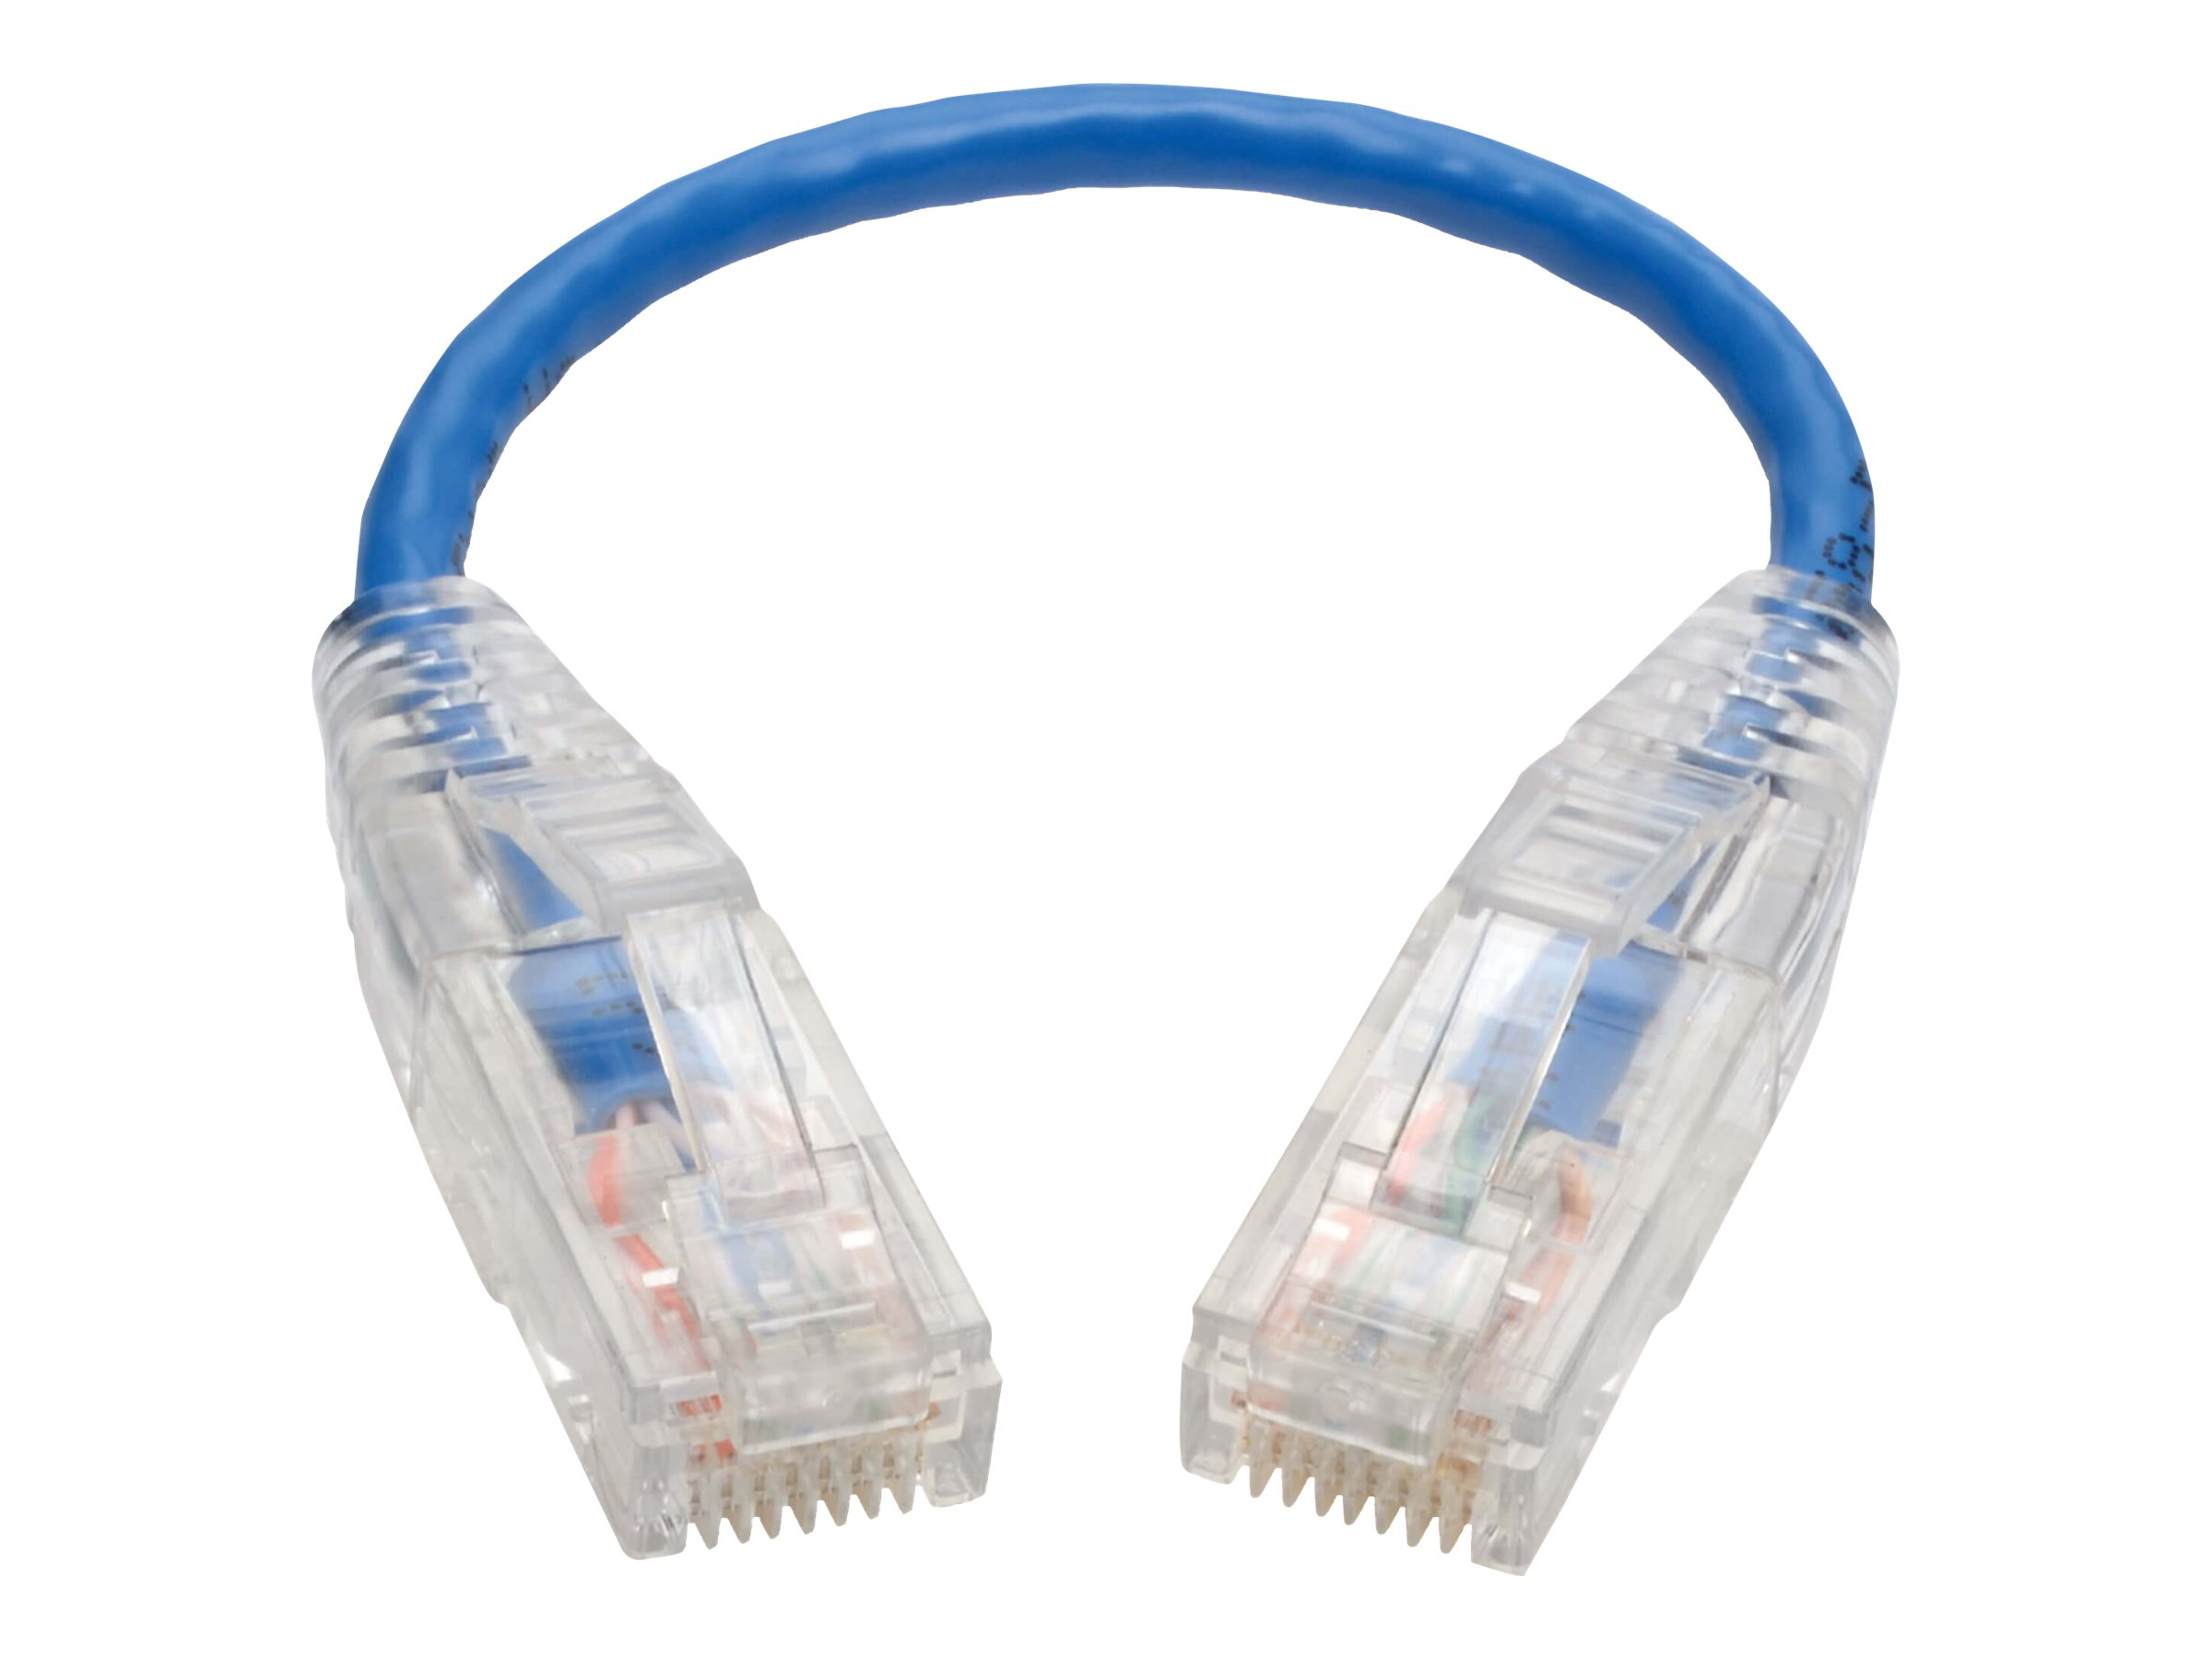 Tripp Lite Cat6 Gigabit Snagless Molded Slim UTP Patch Cable RJ45 Blue 8in - patch cable - 20.3 cm - blue